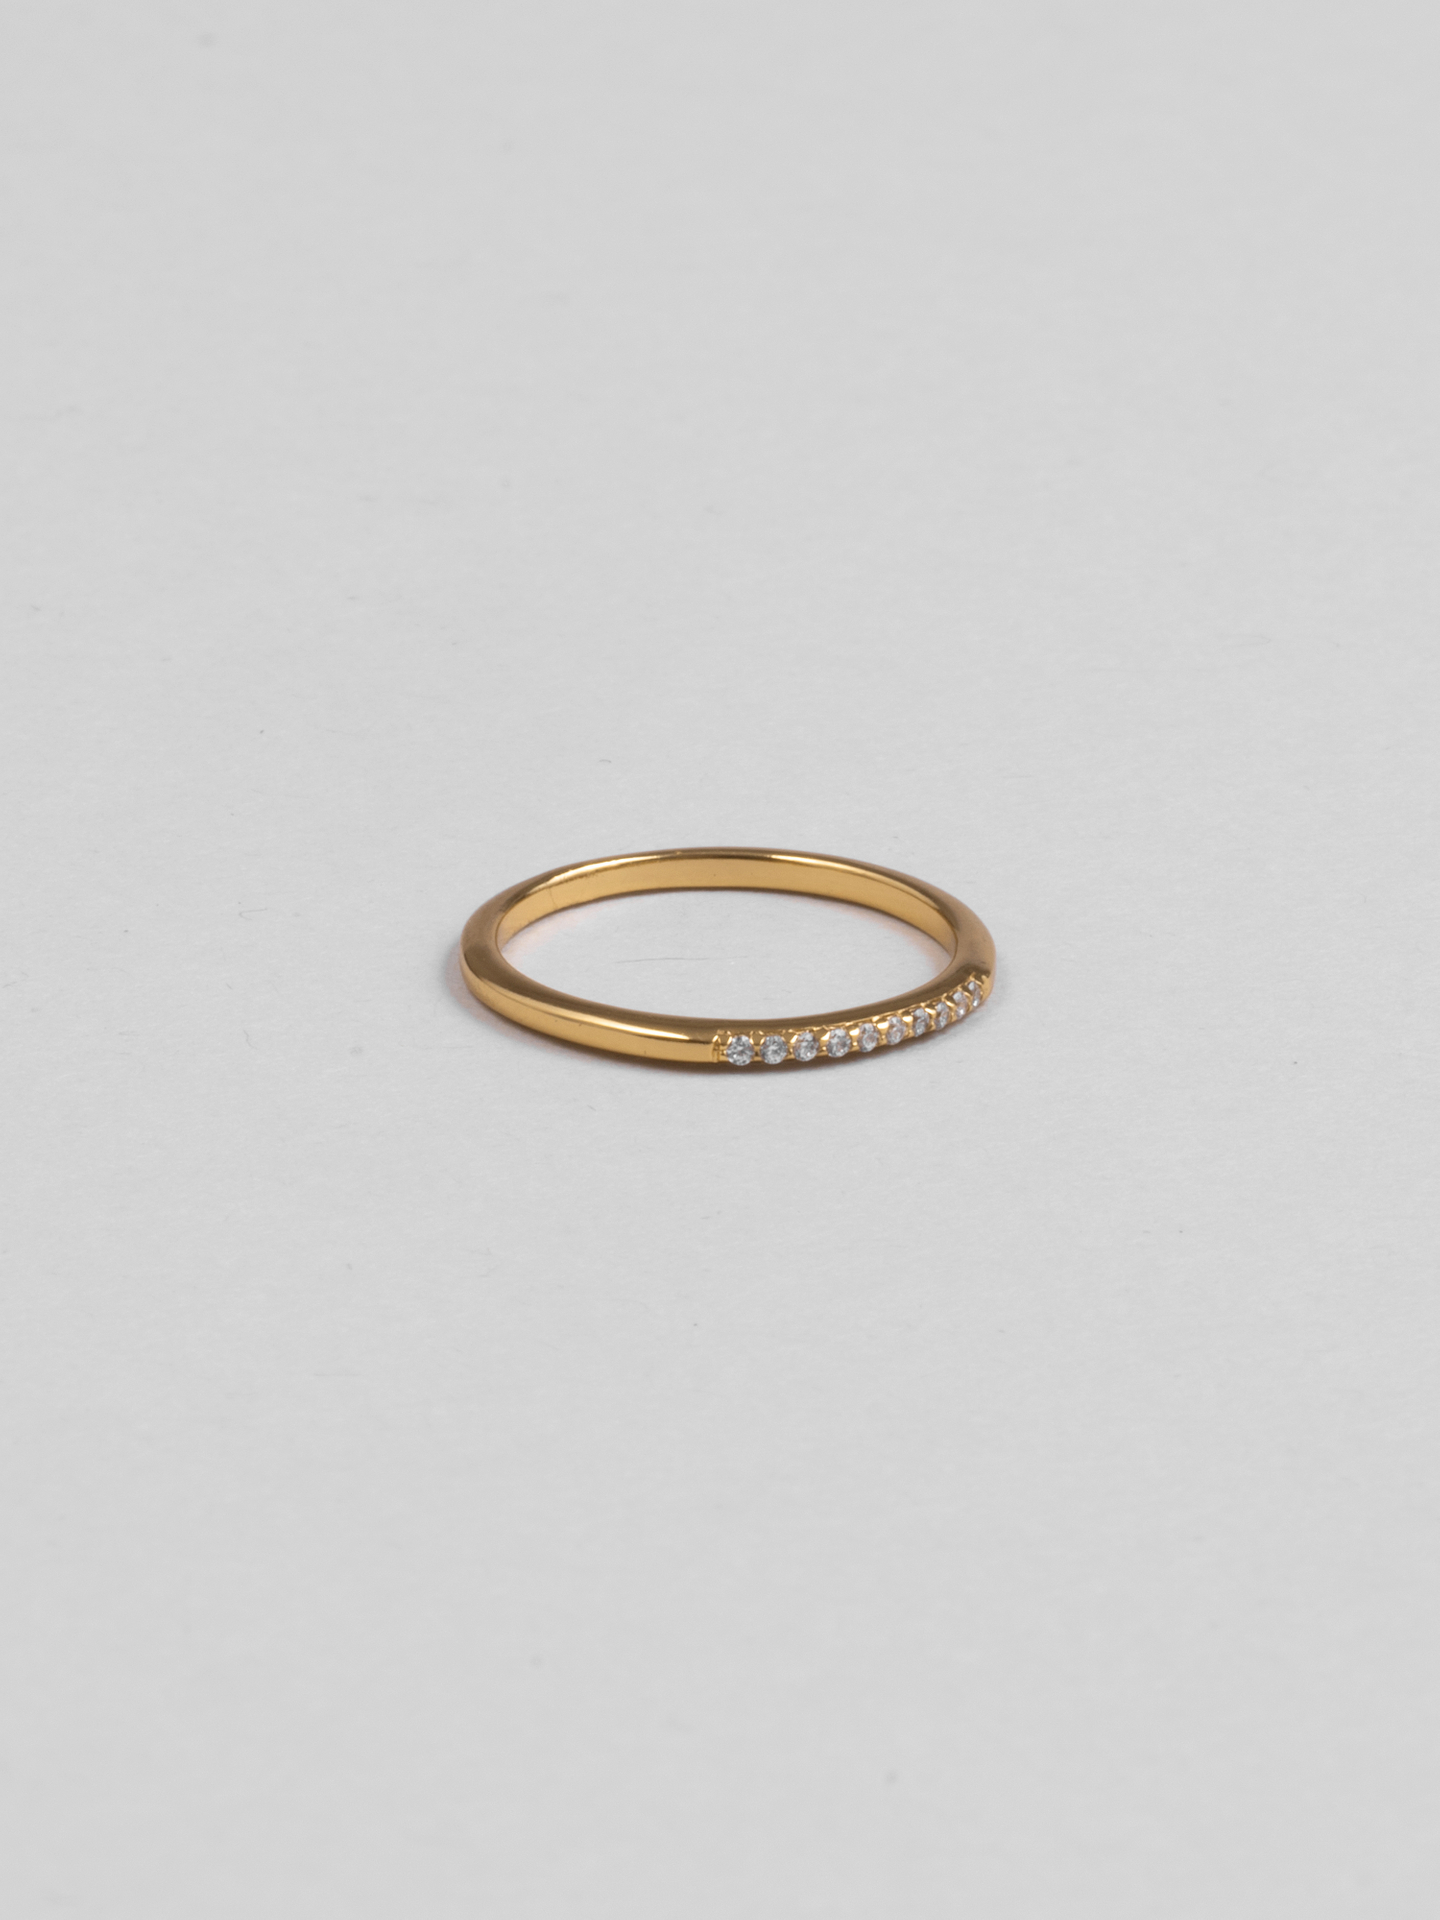 The Mila Ring